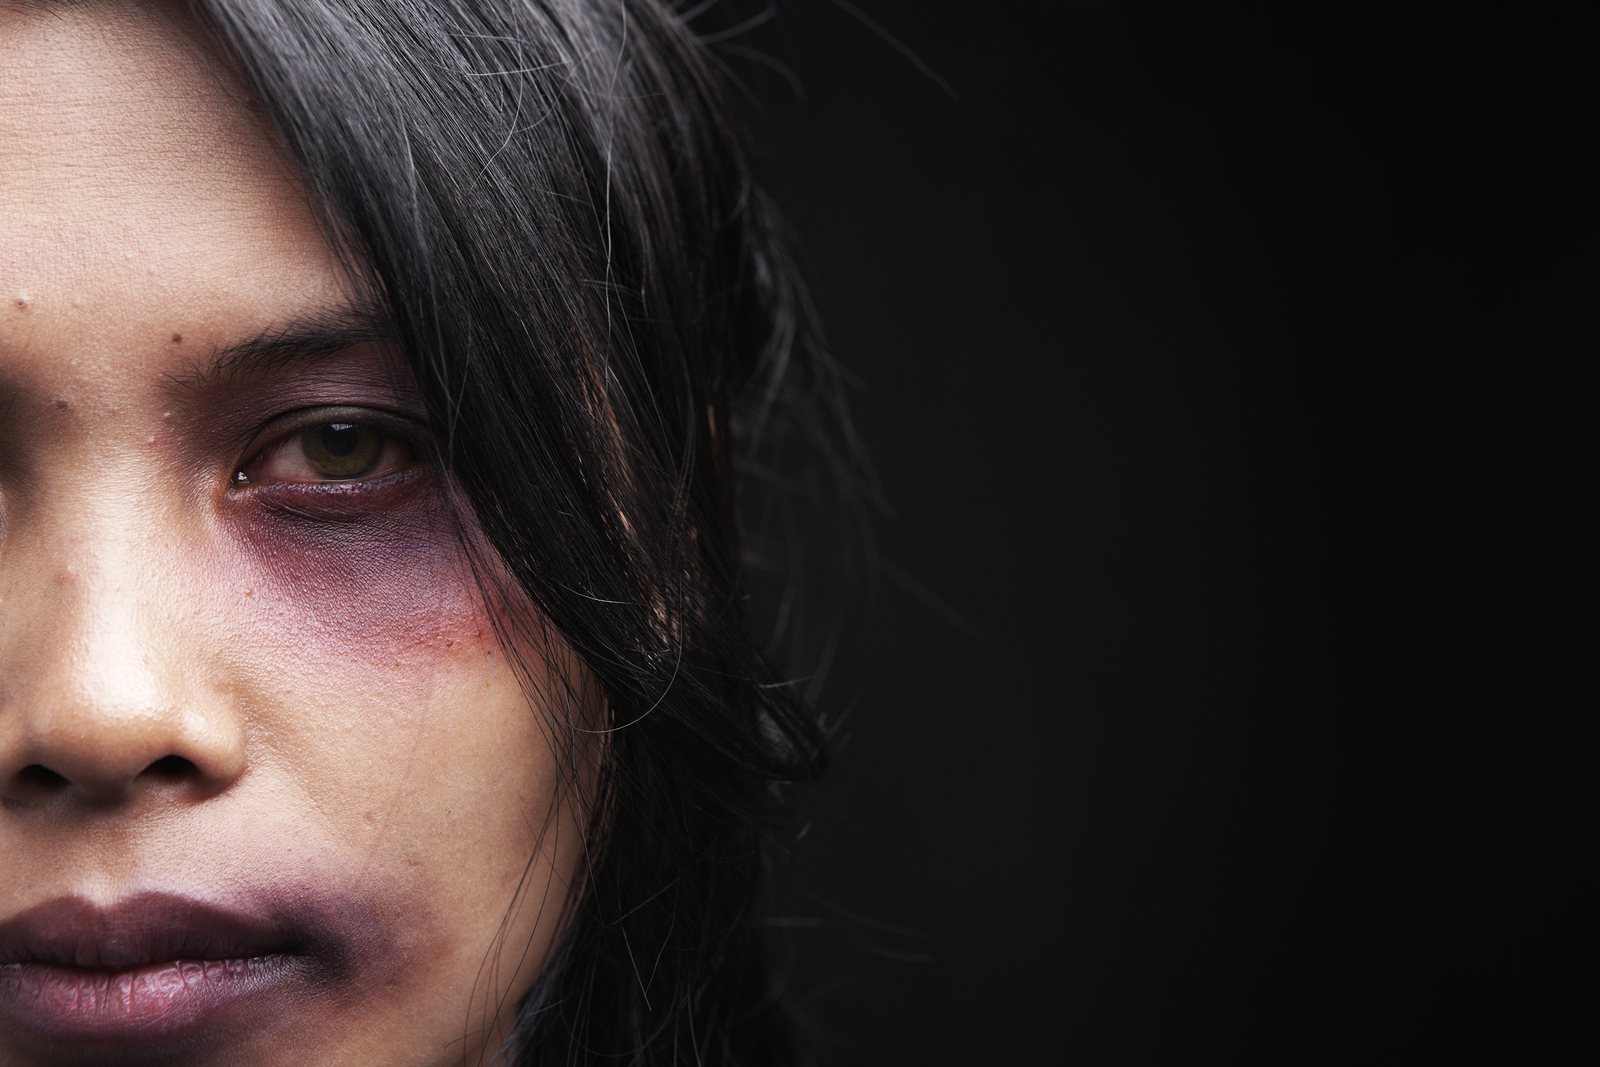 the issue of violence against the native american women